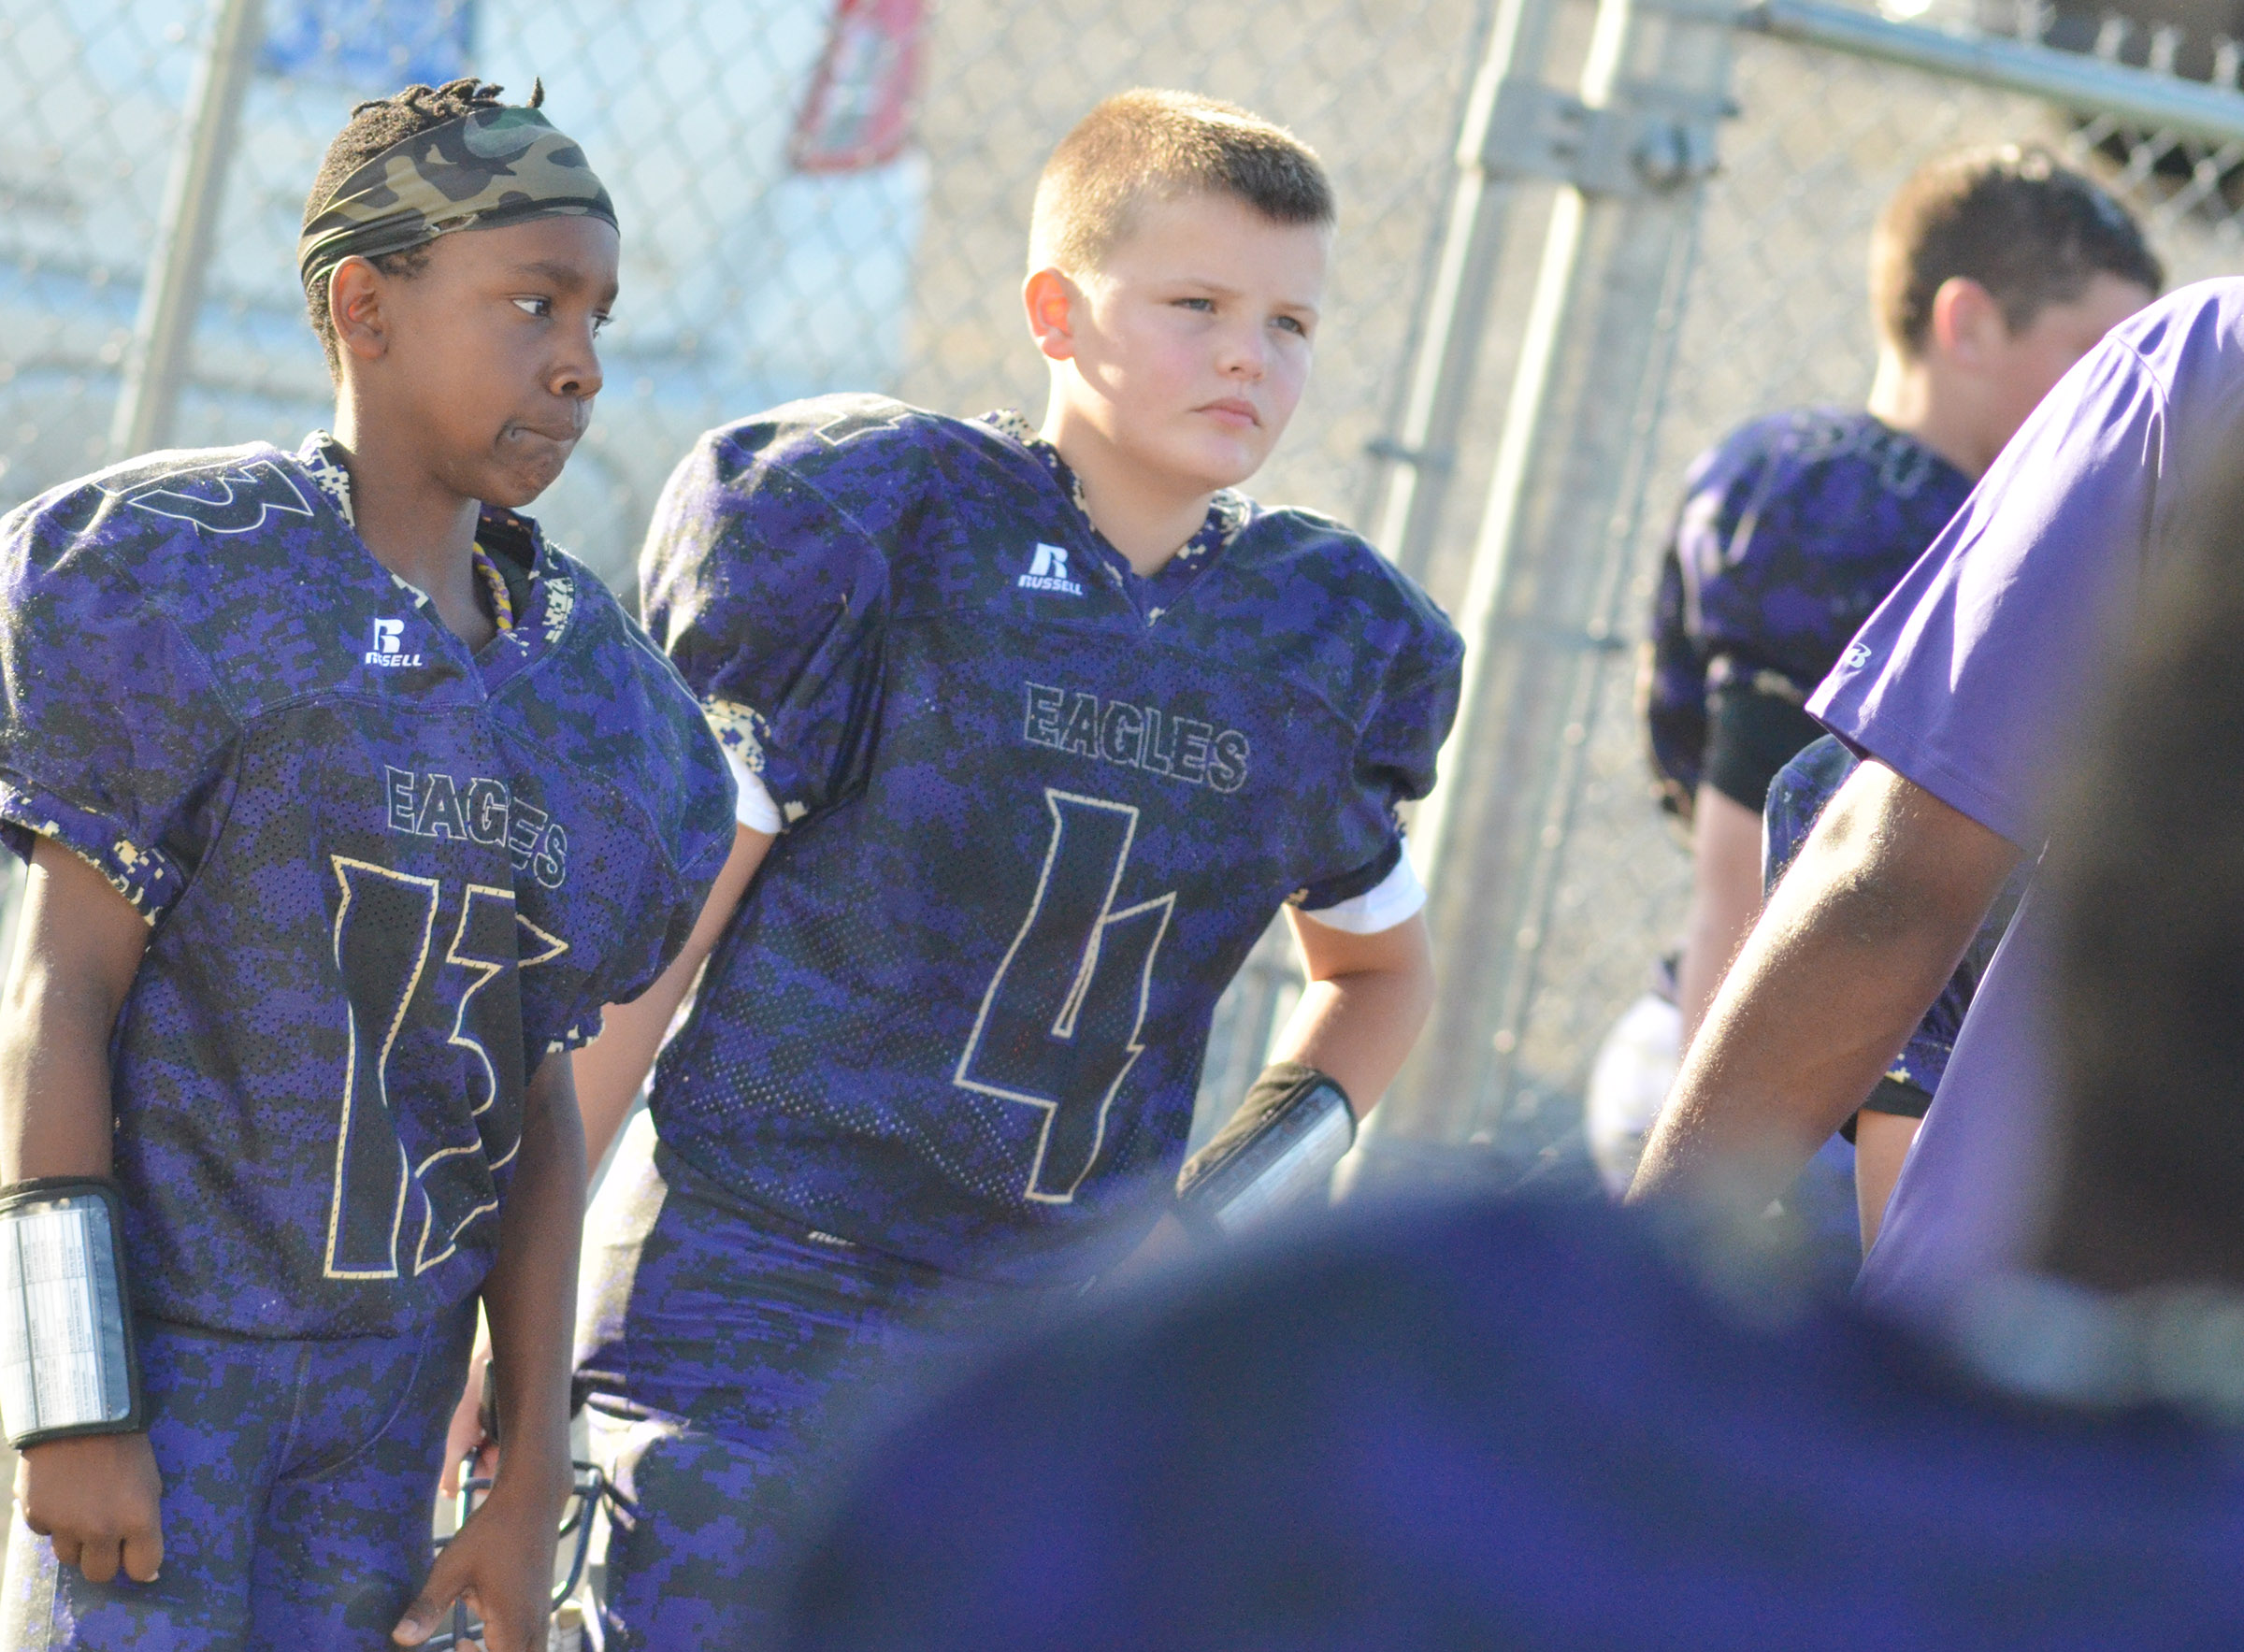 CMS eighth-grader Jadan Furman, at left, and seventh-grader Konner Forbis listen to their coaches during half-time.